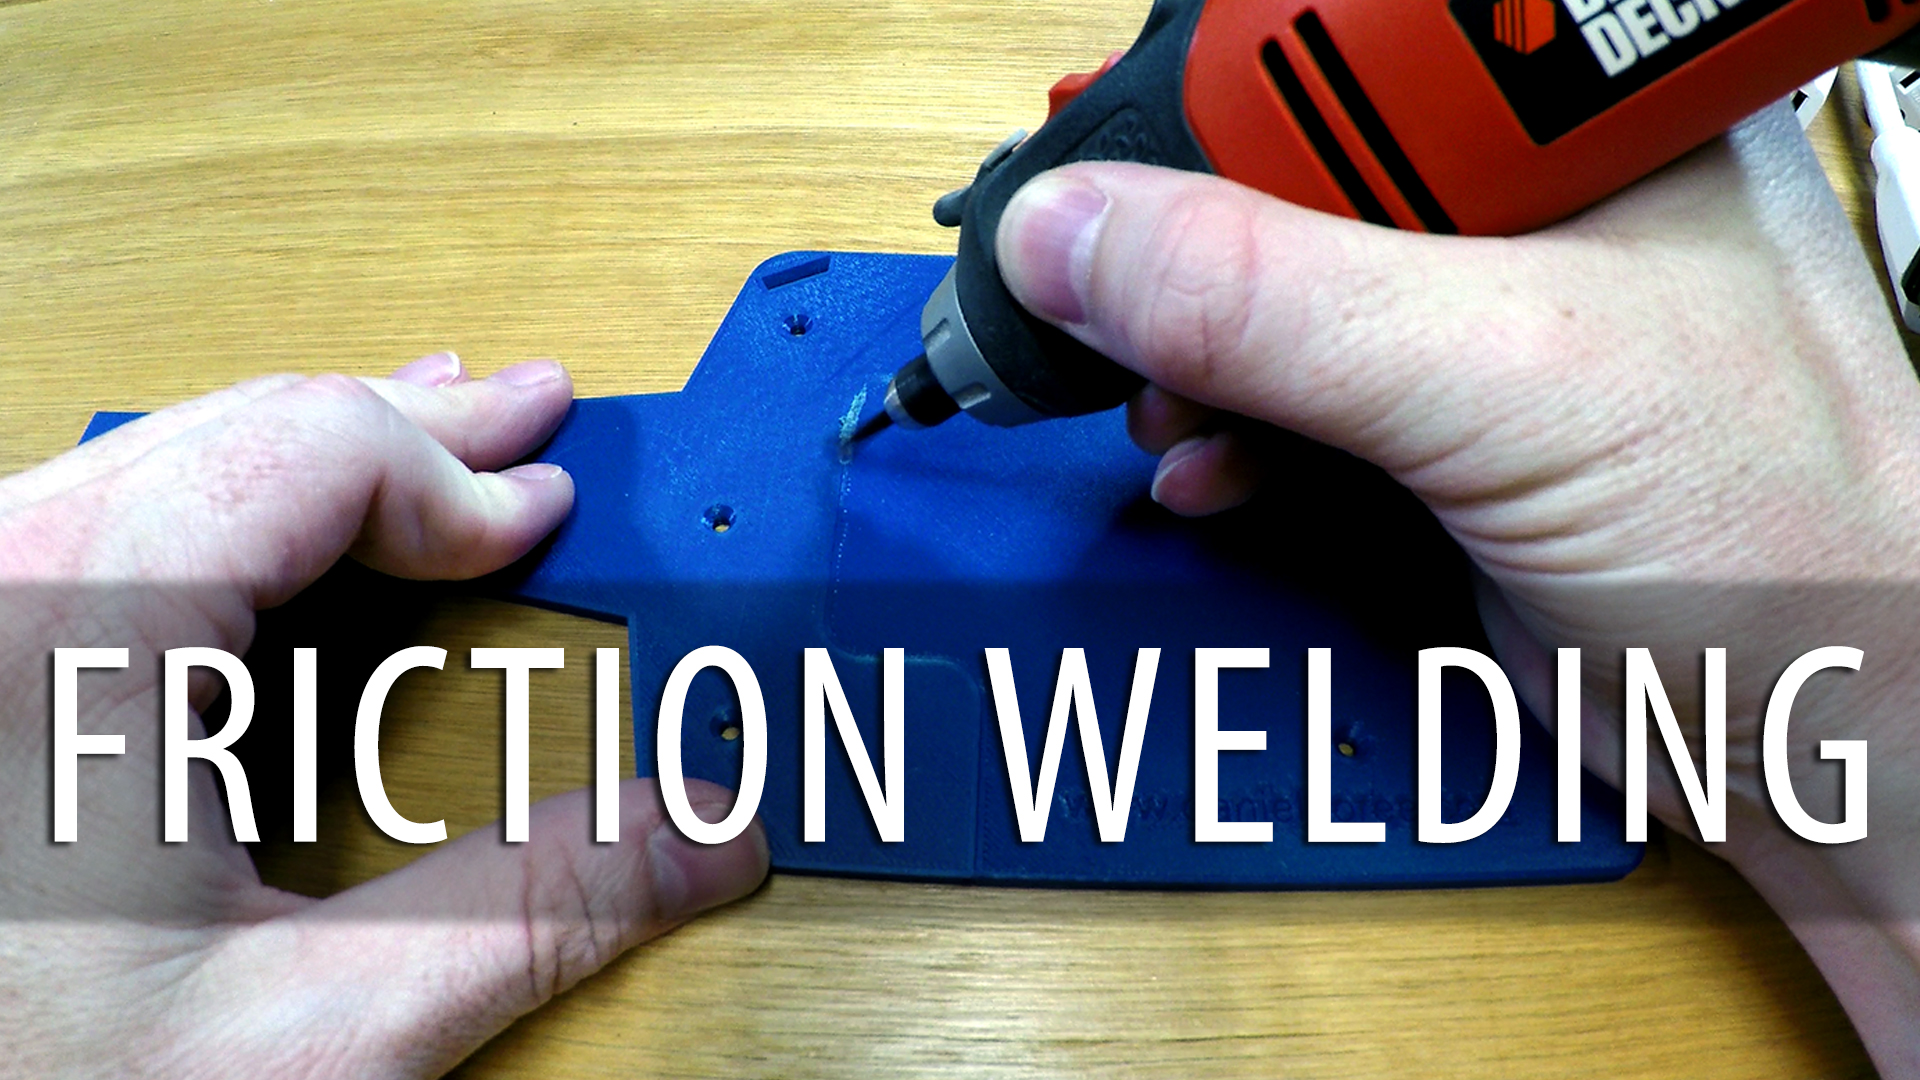 How To Friction Weld 3D Printed Parts